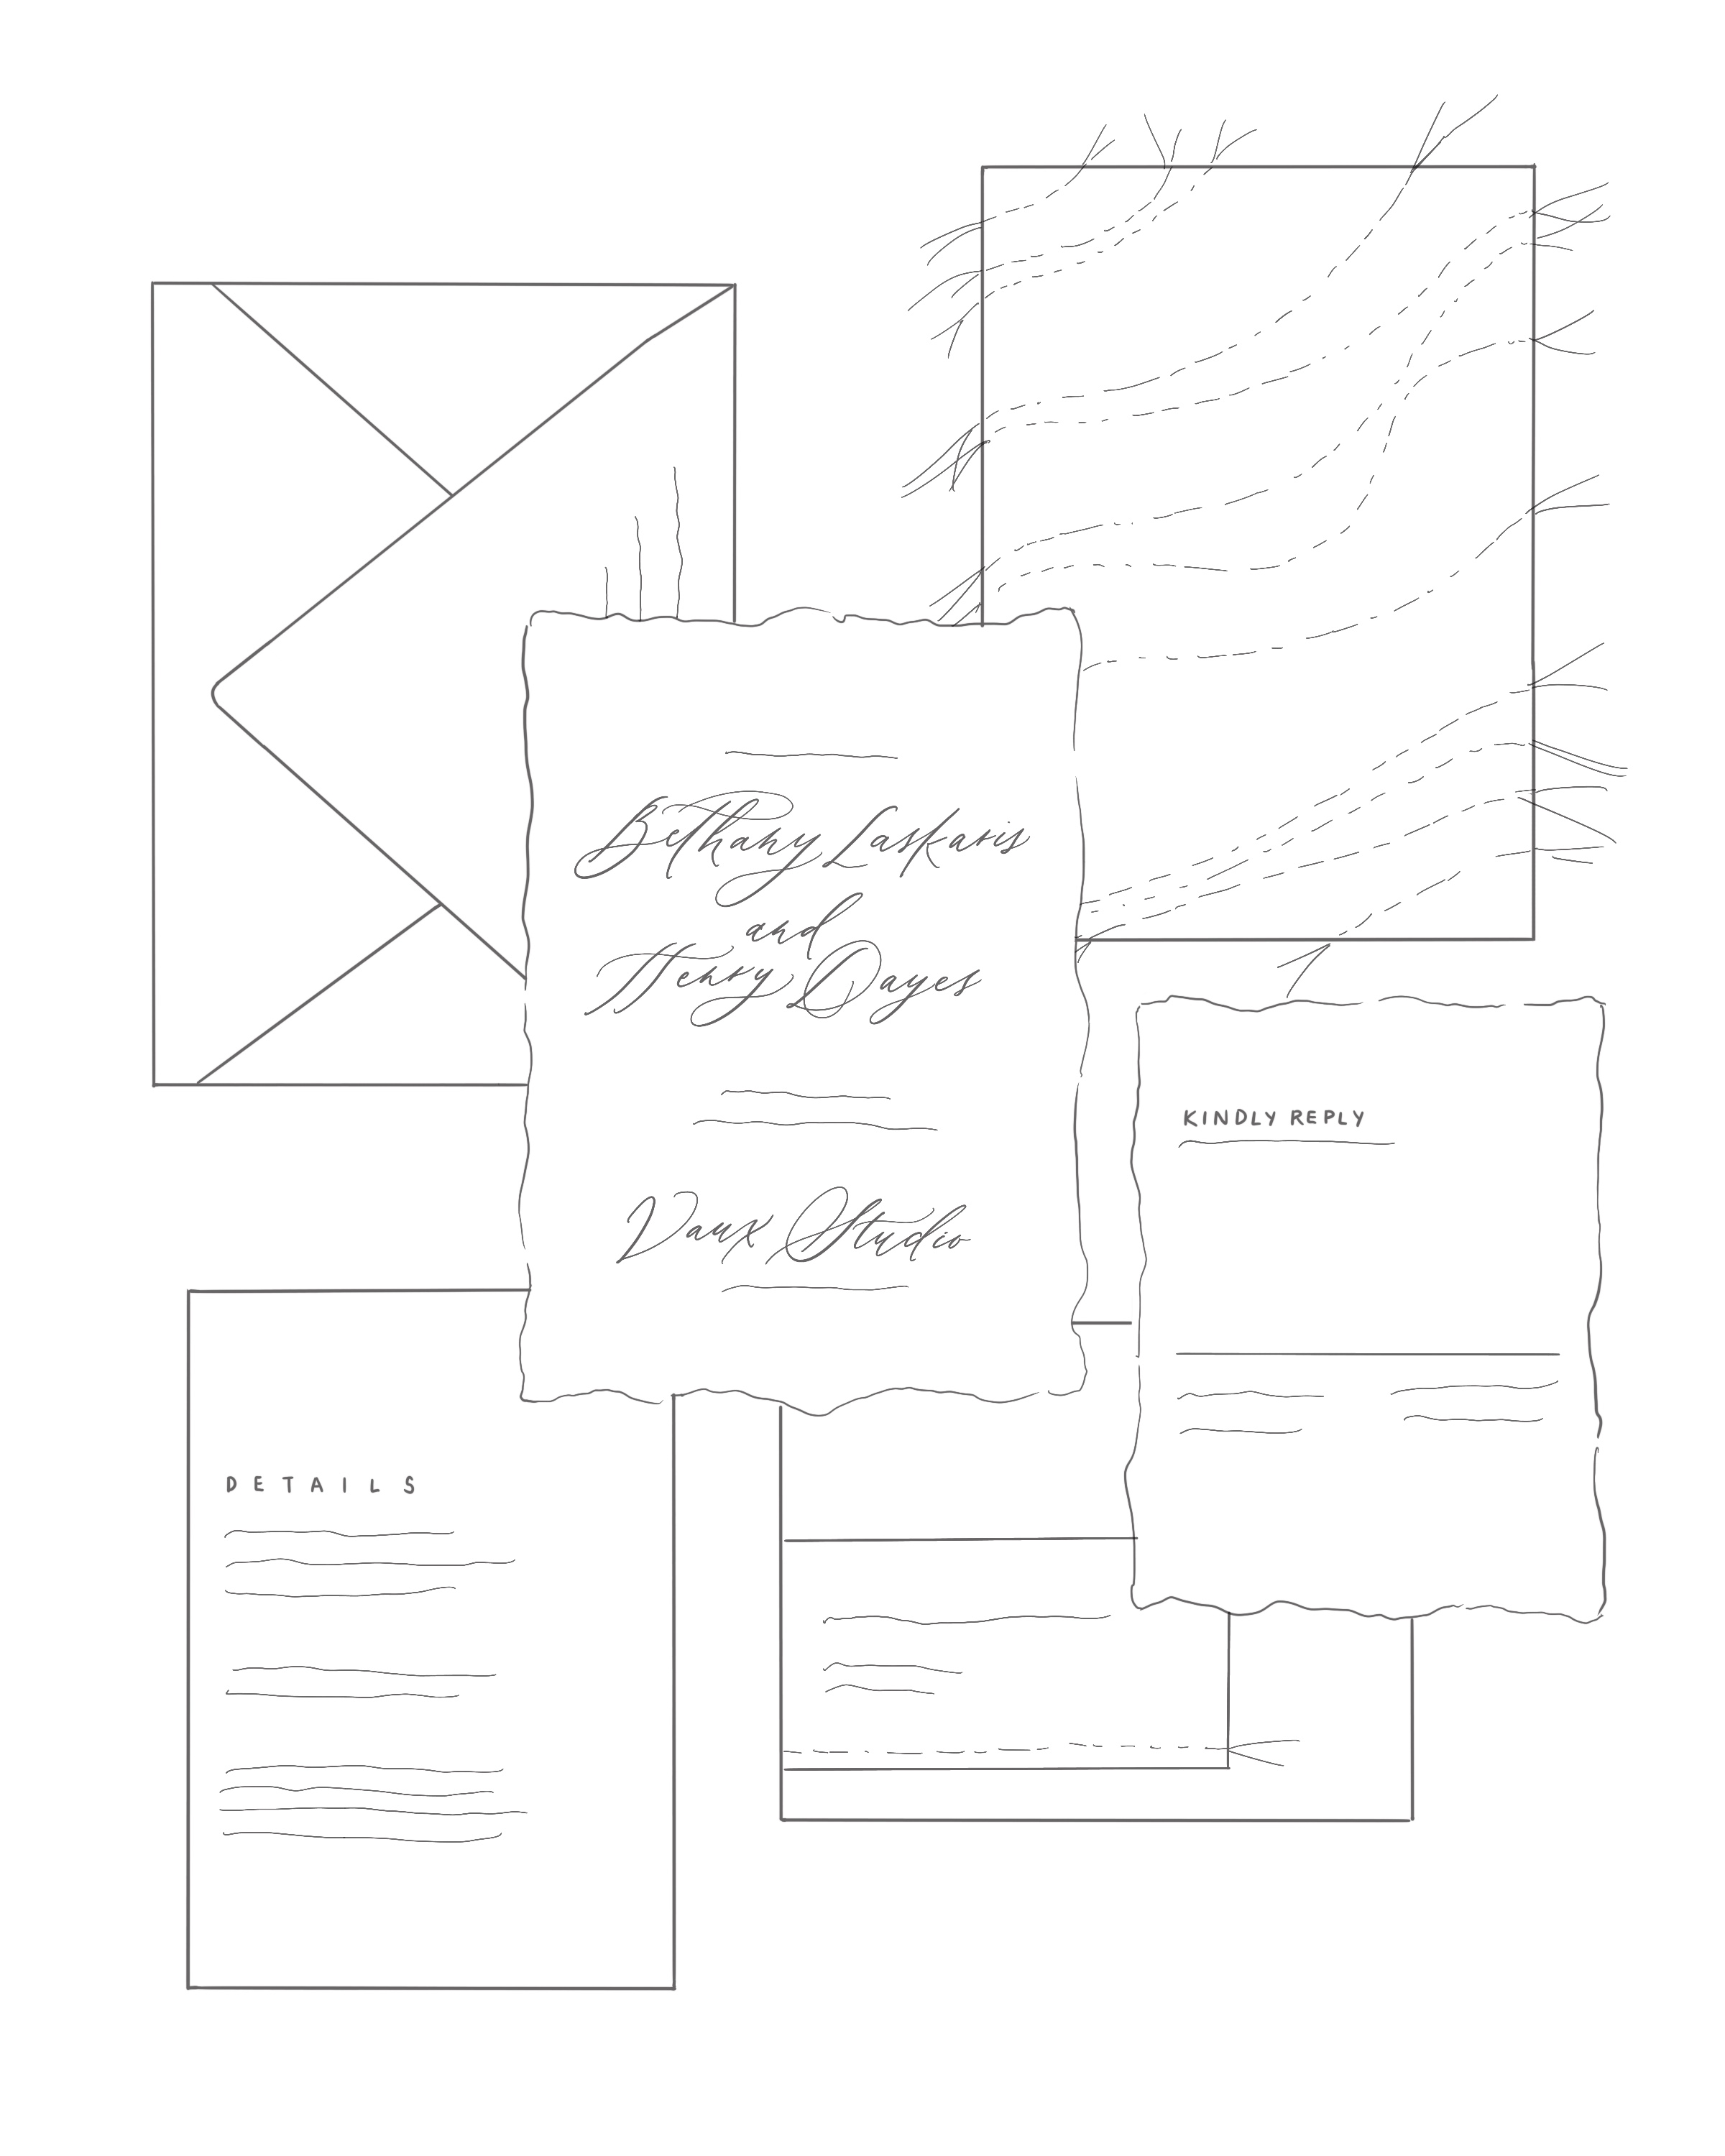 Behind the Scenes: Sketching Custom Stationery. How sketching can change your creative business.